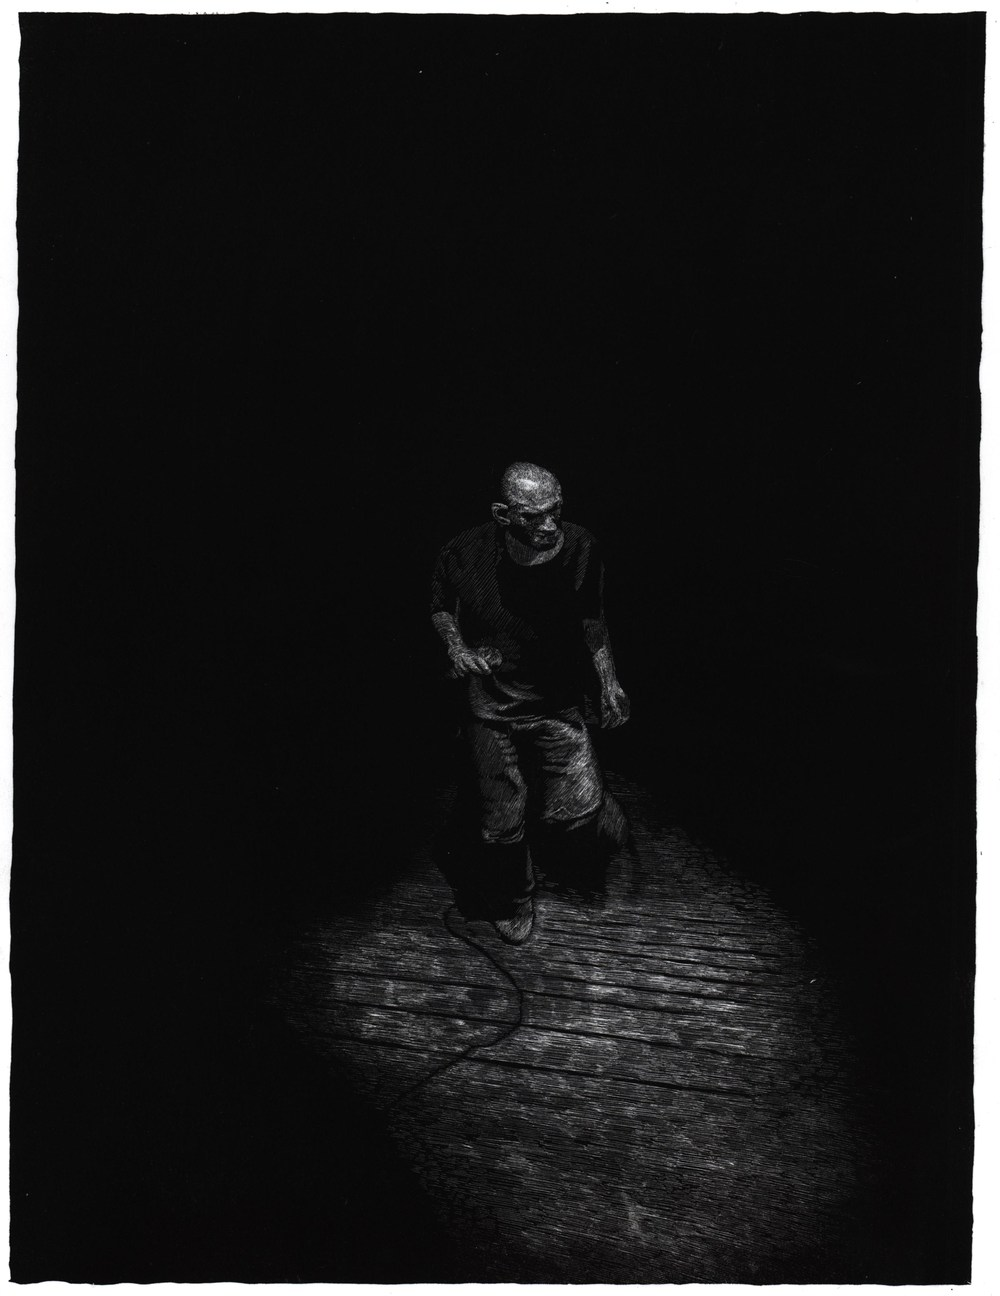 Hoax lithography (2012)